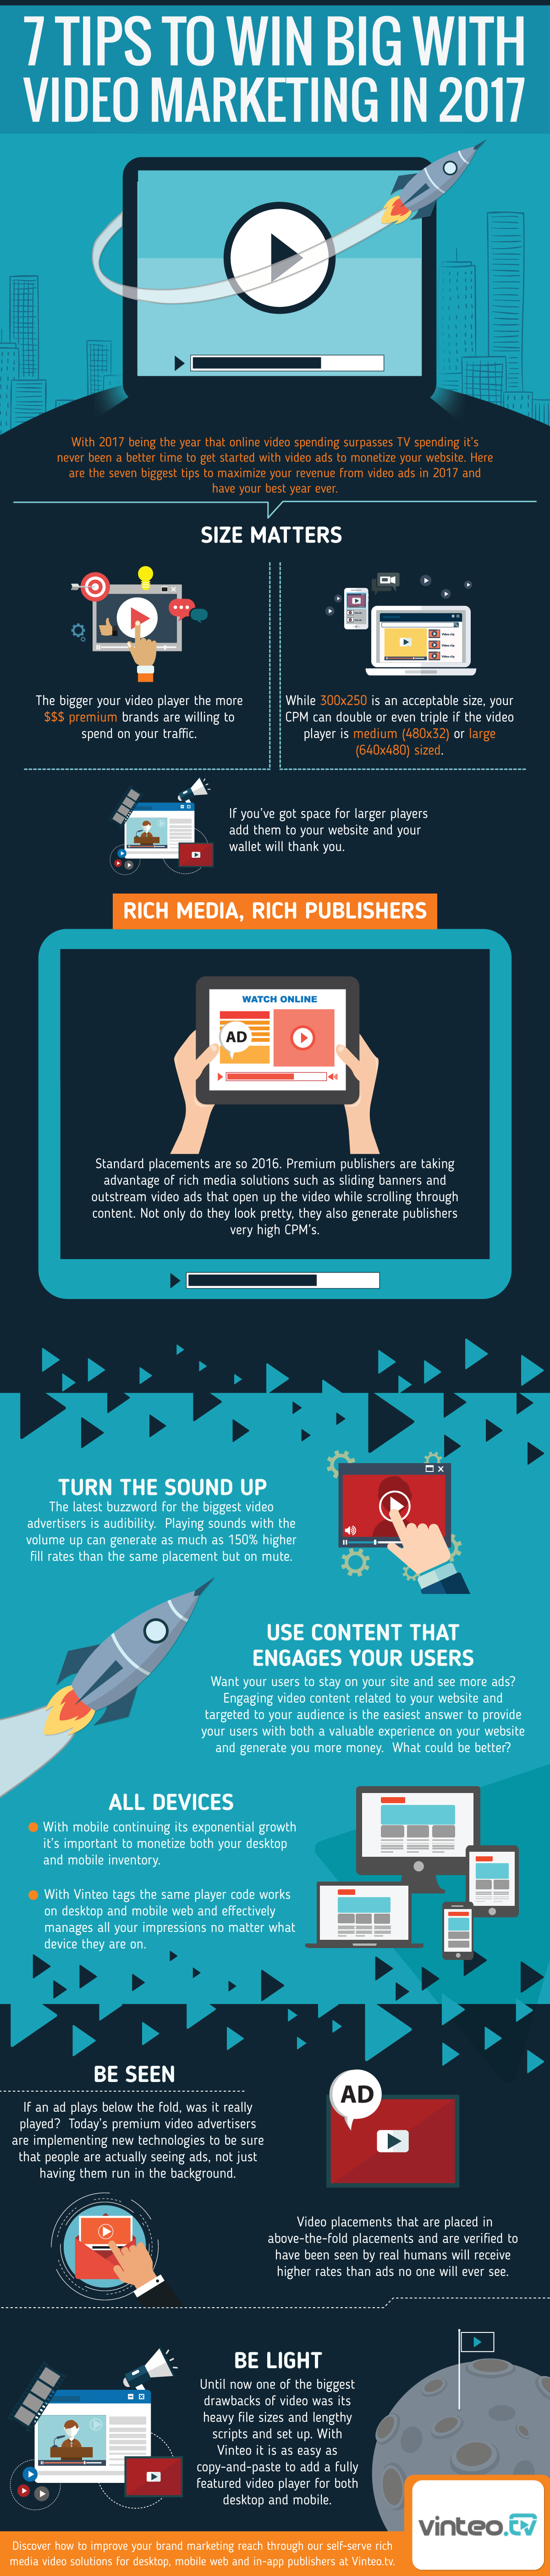 How to Win Big with Video Marketing [Infographic]